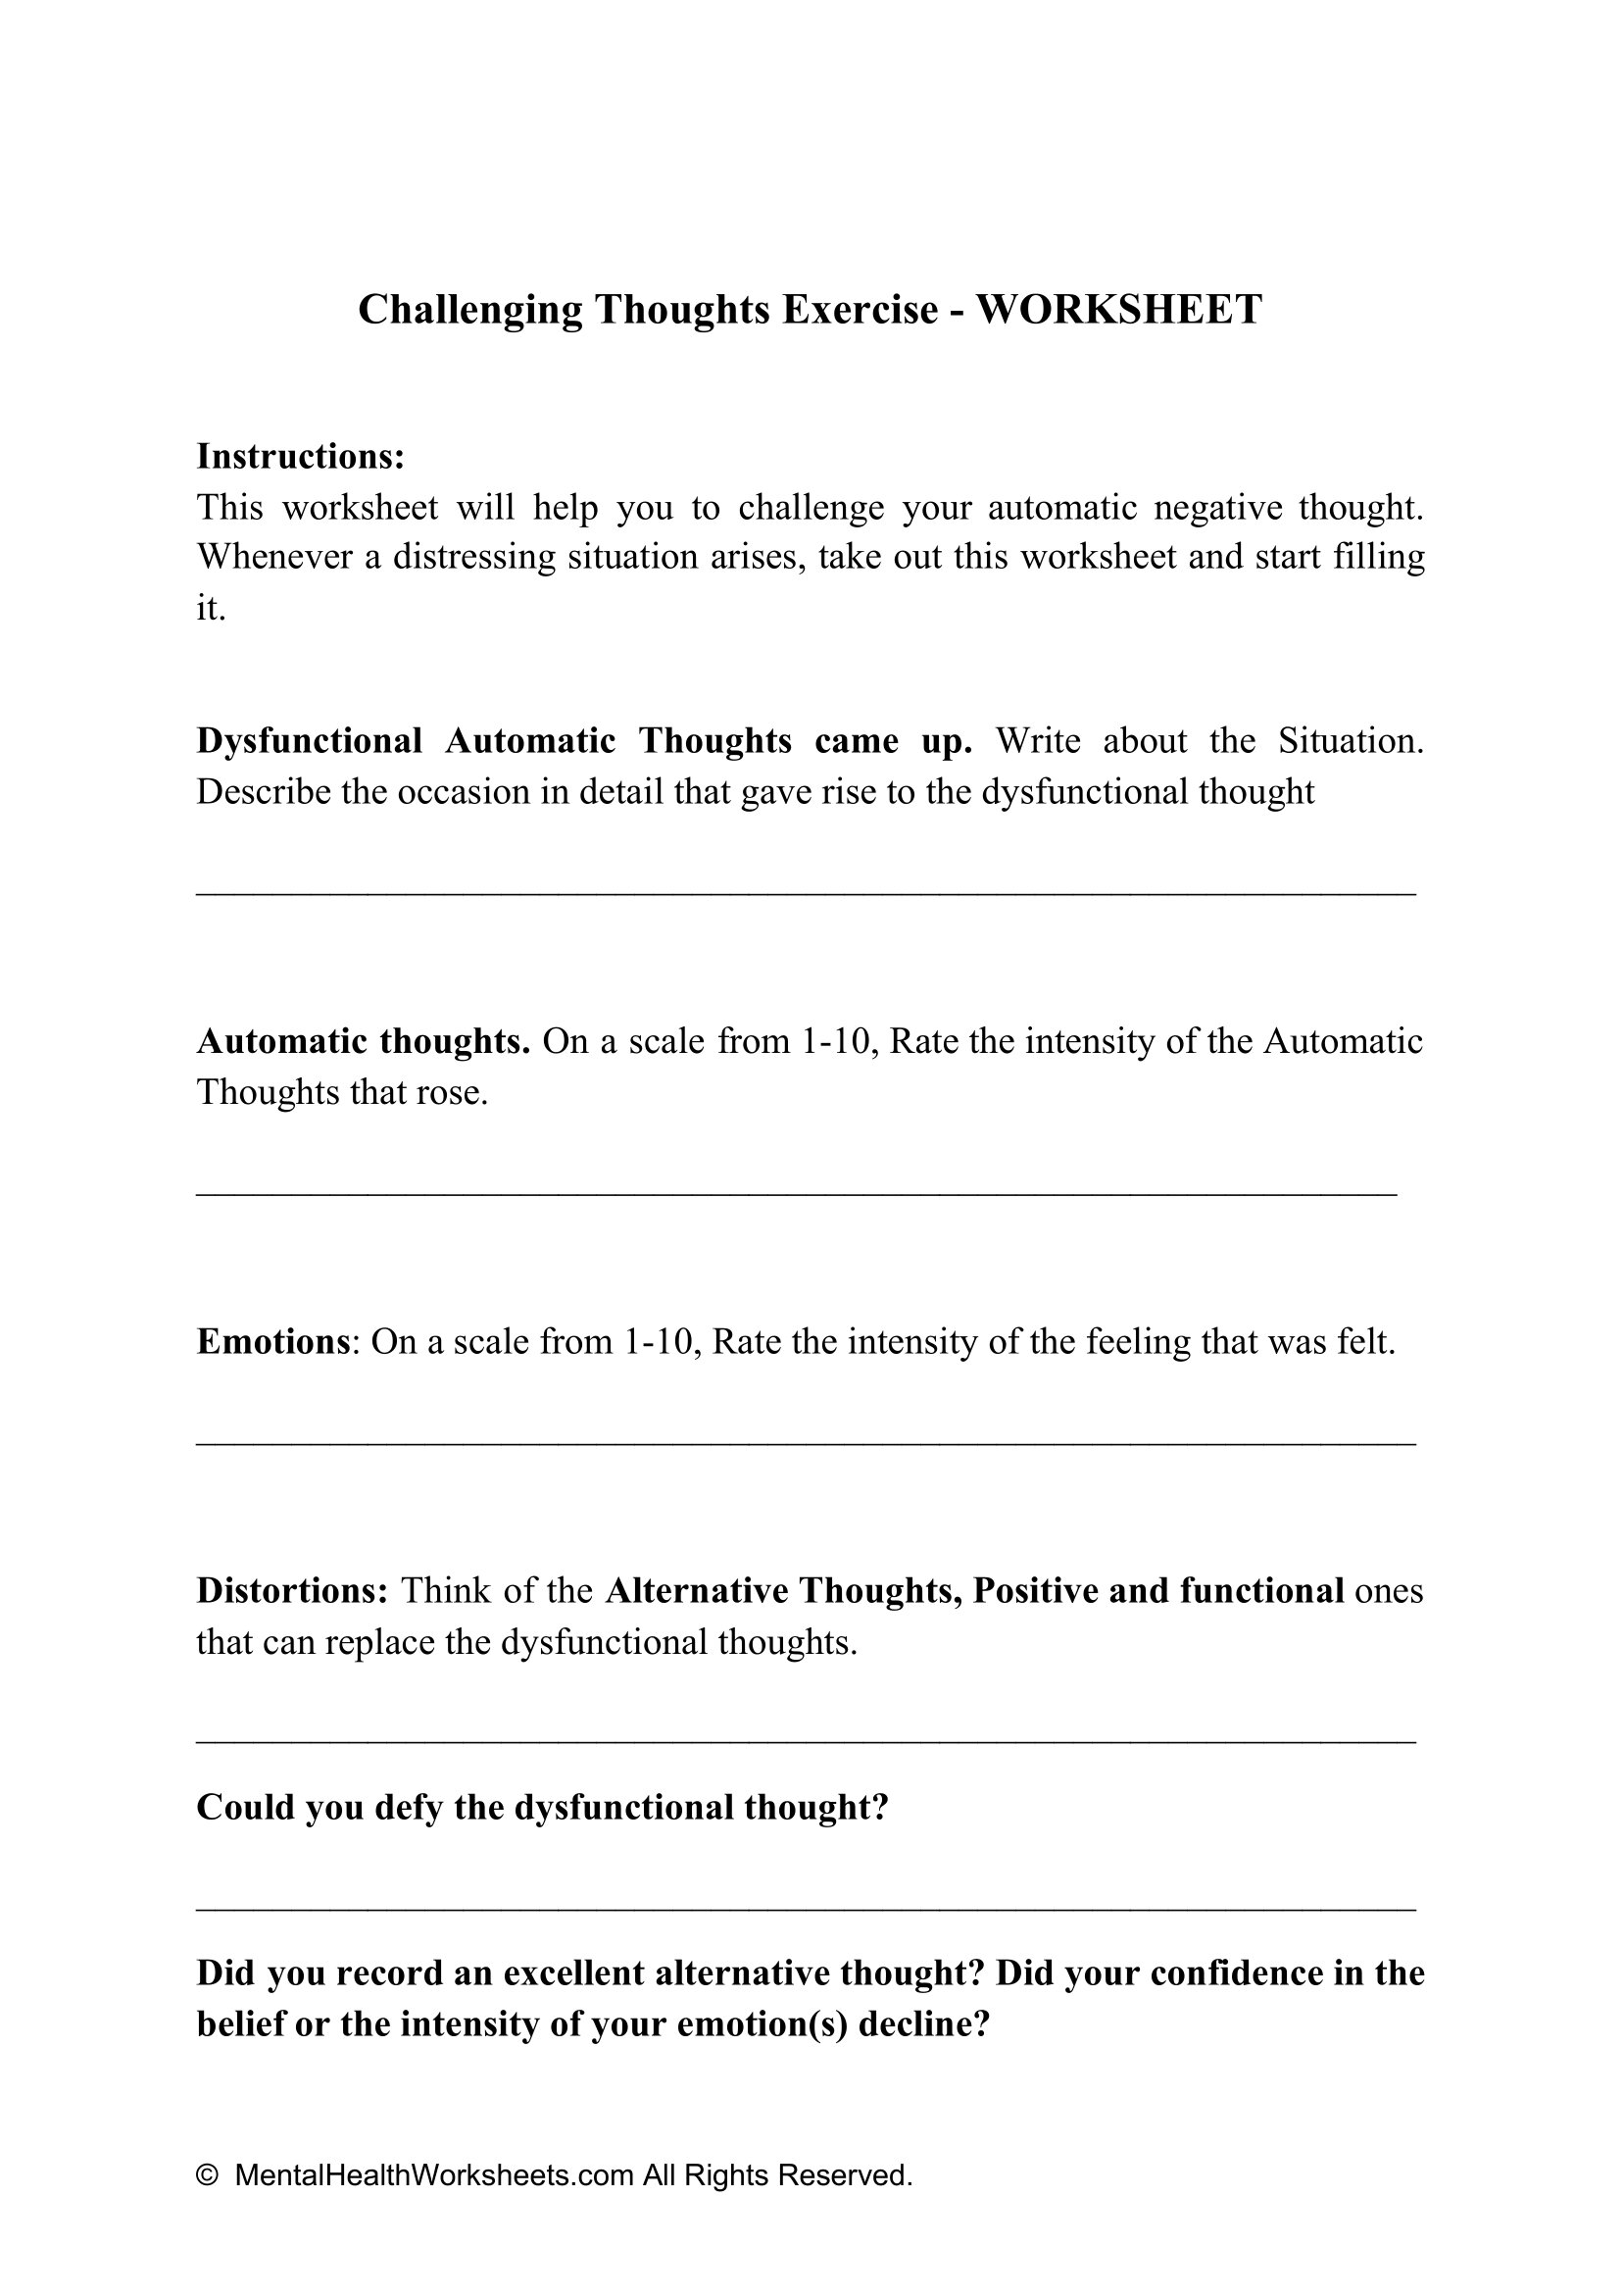 Challenging Thoughts Exercise Worksheet